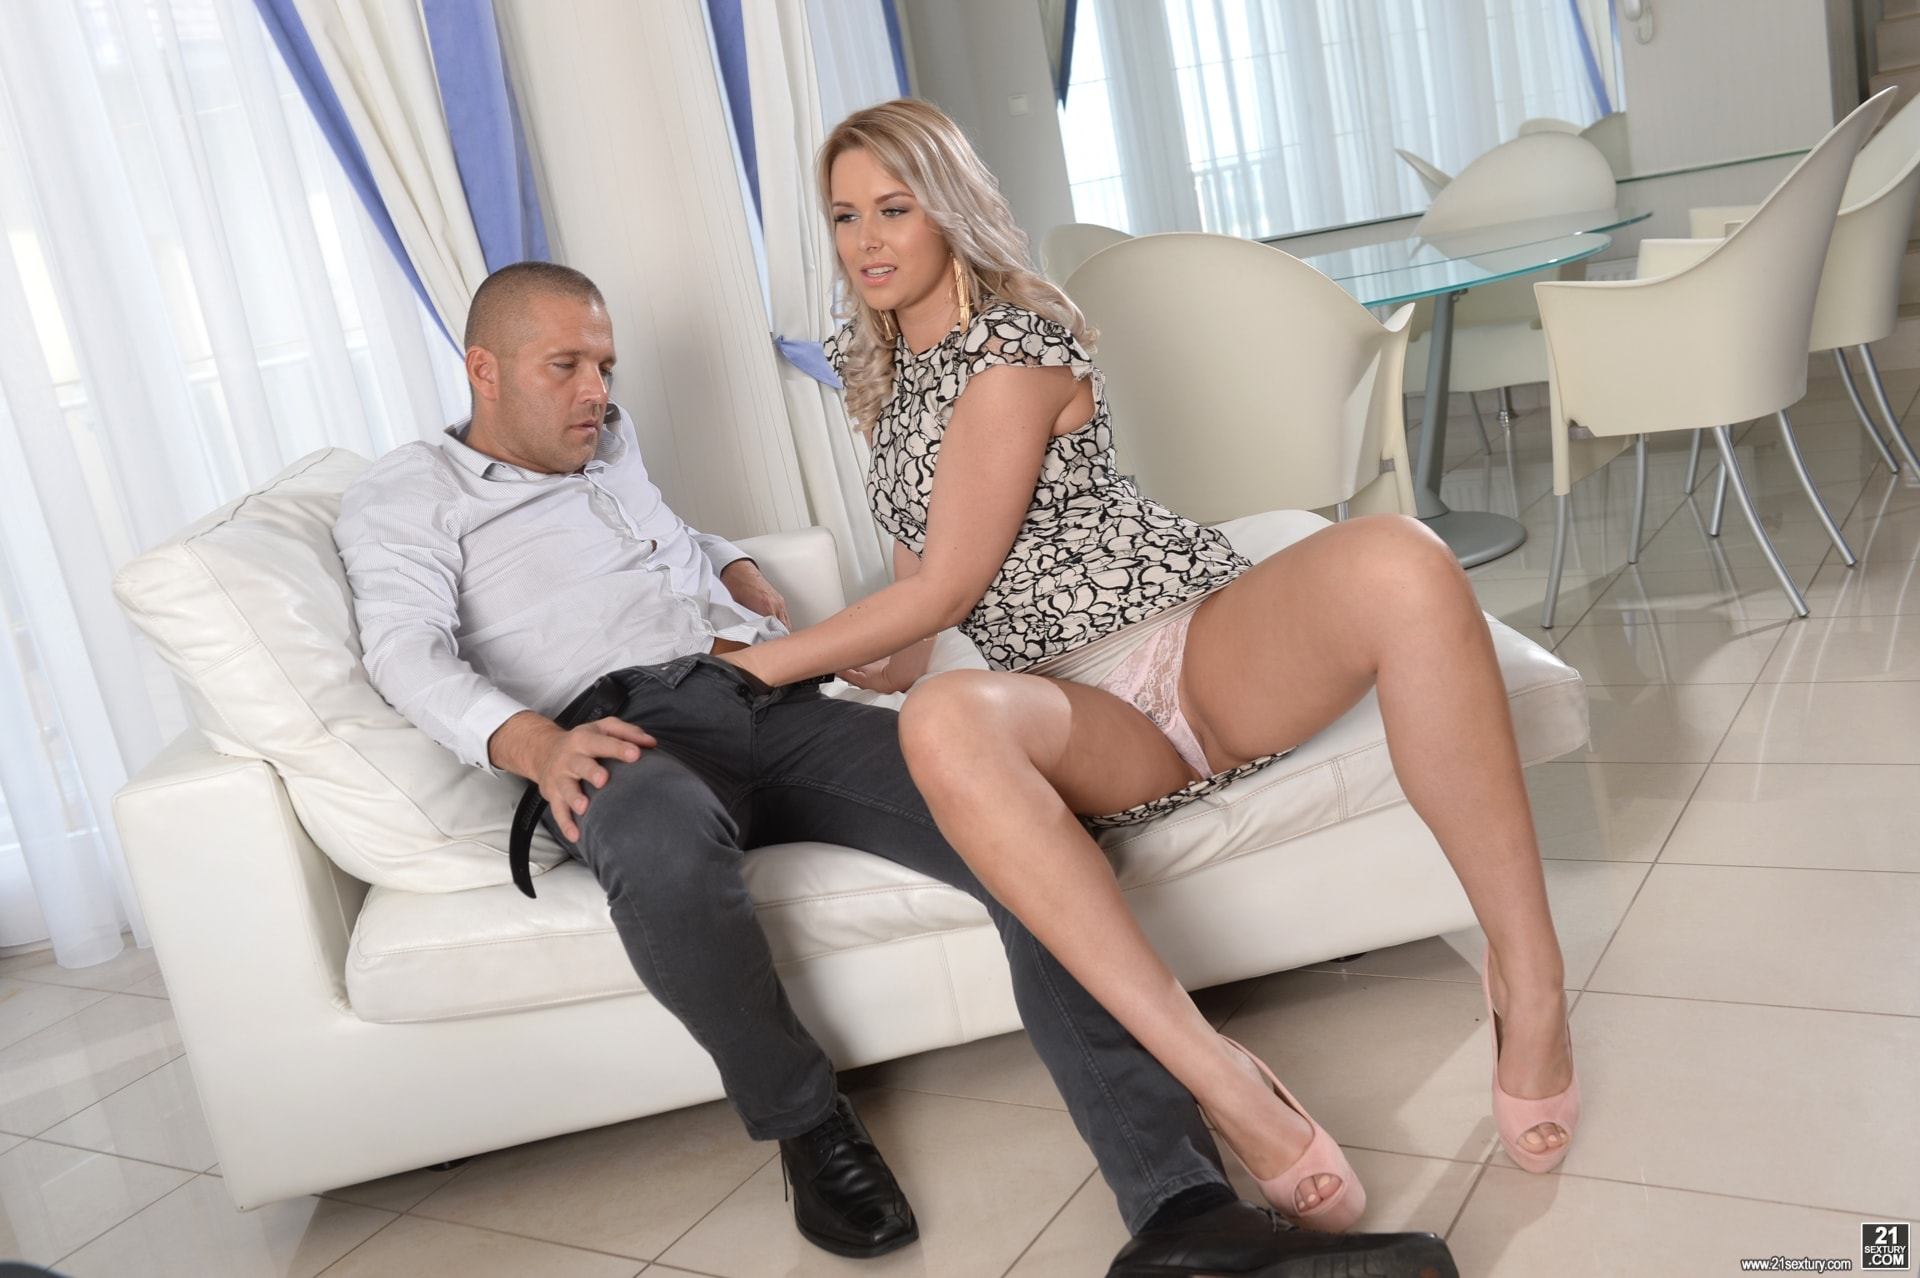 21Sextury 'Taking My Husband and Partner At Once' starring Nikki Dream (Photo 70)